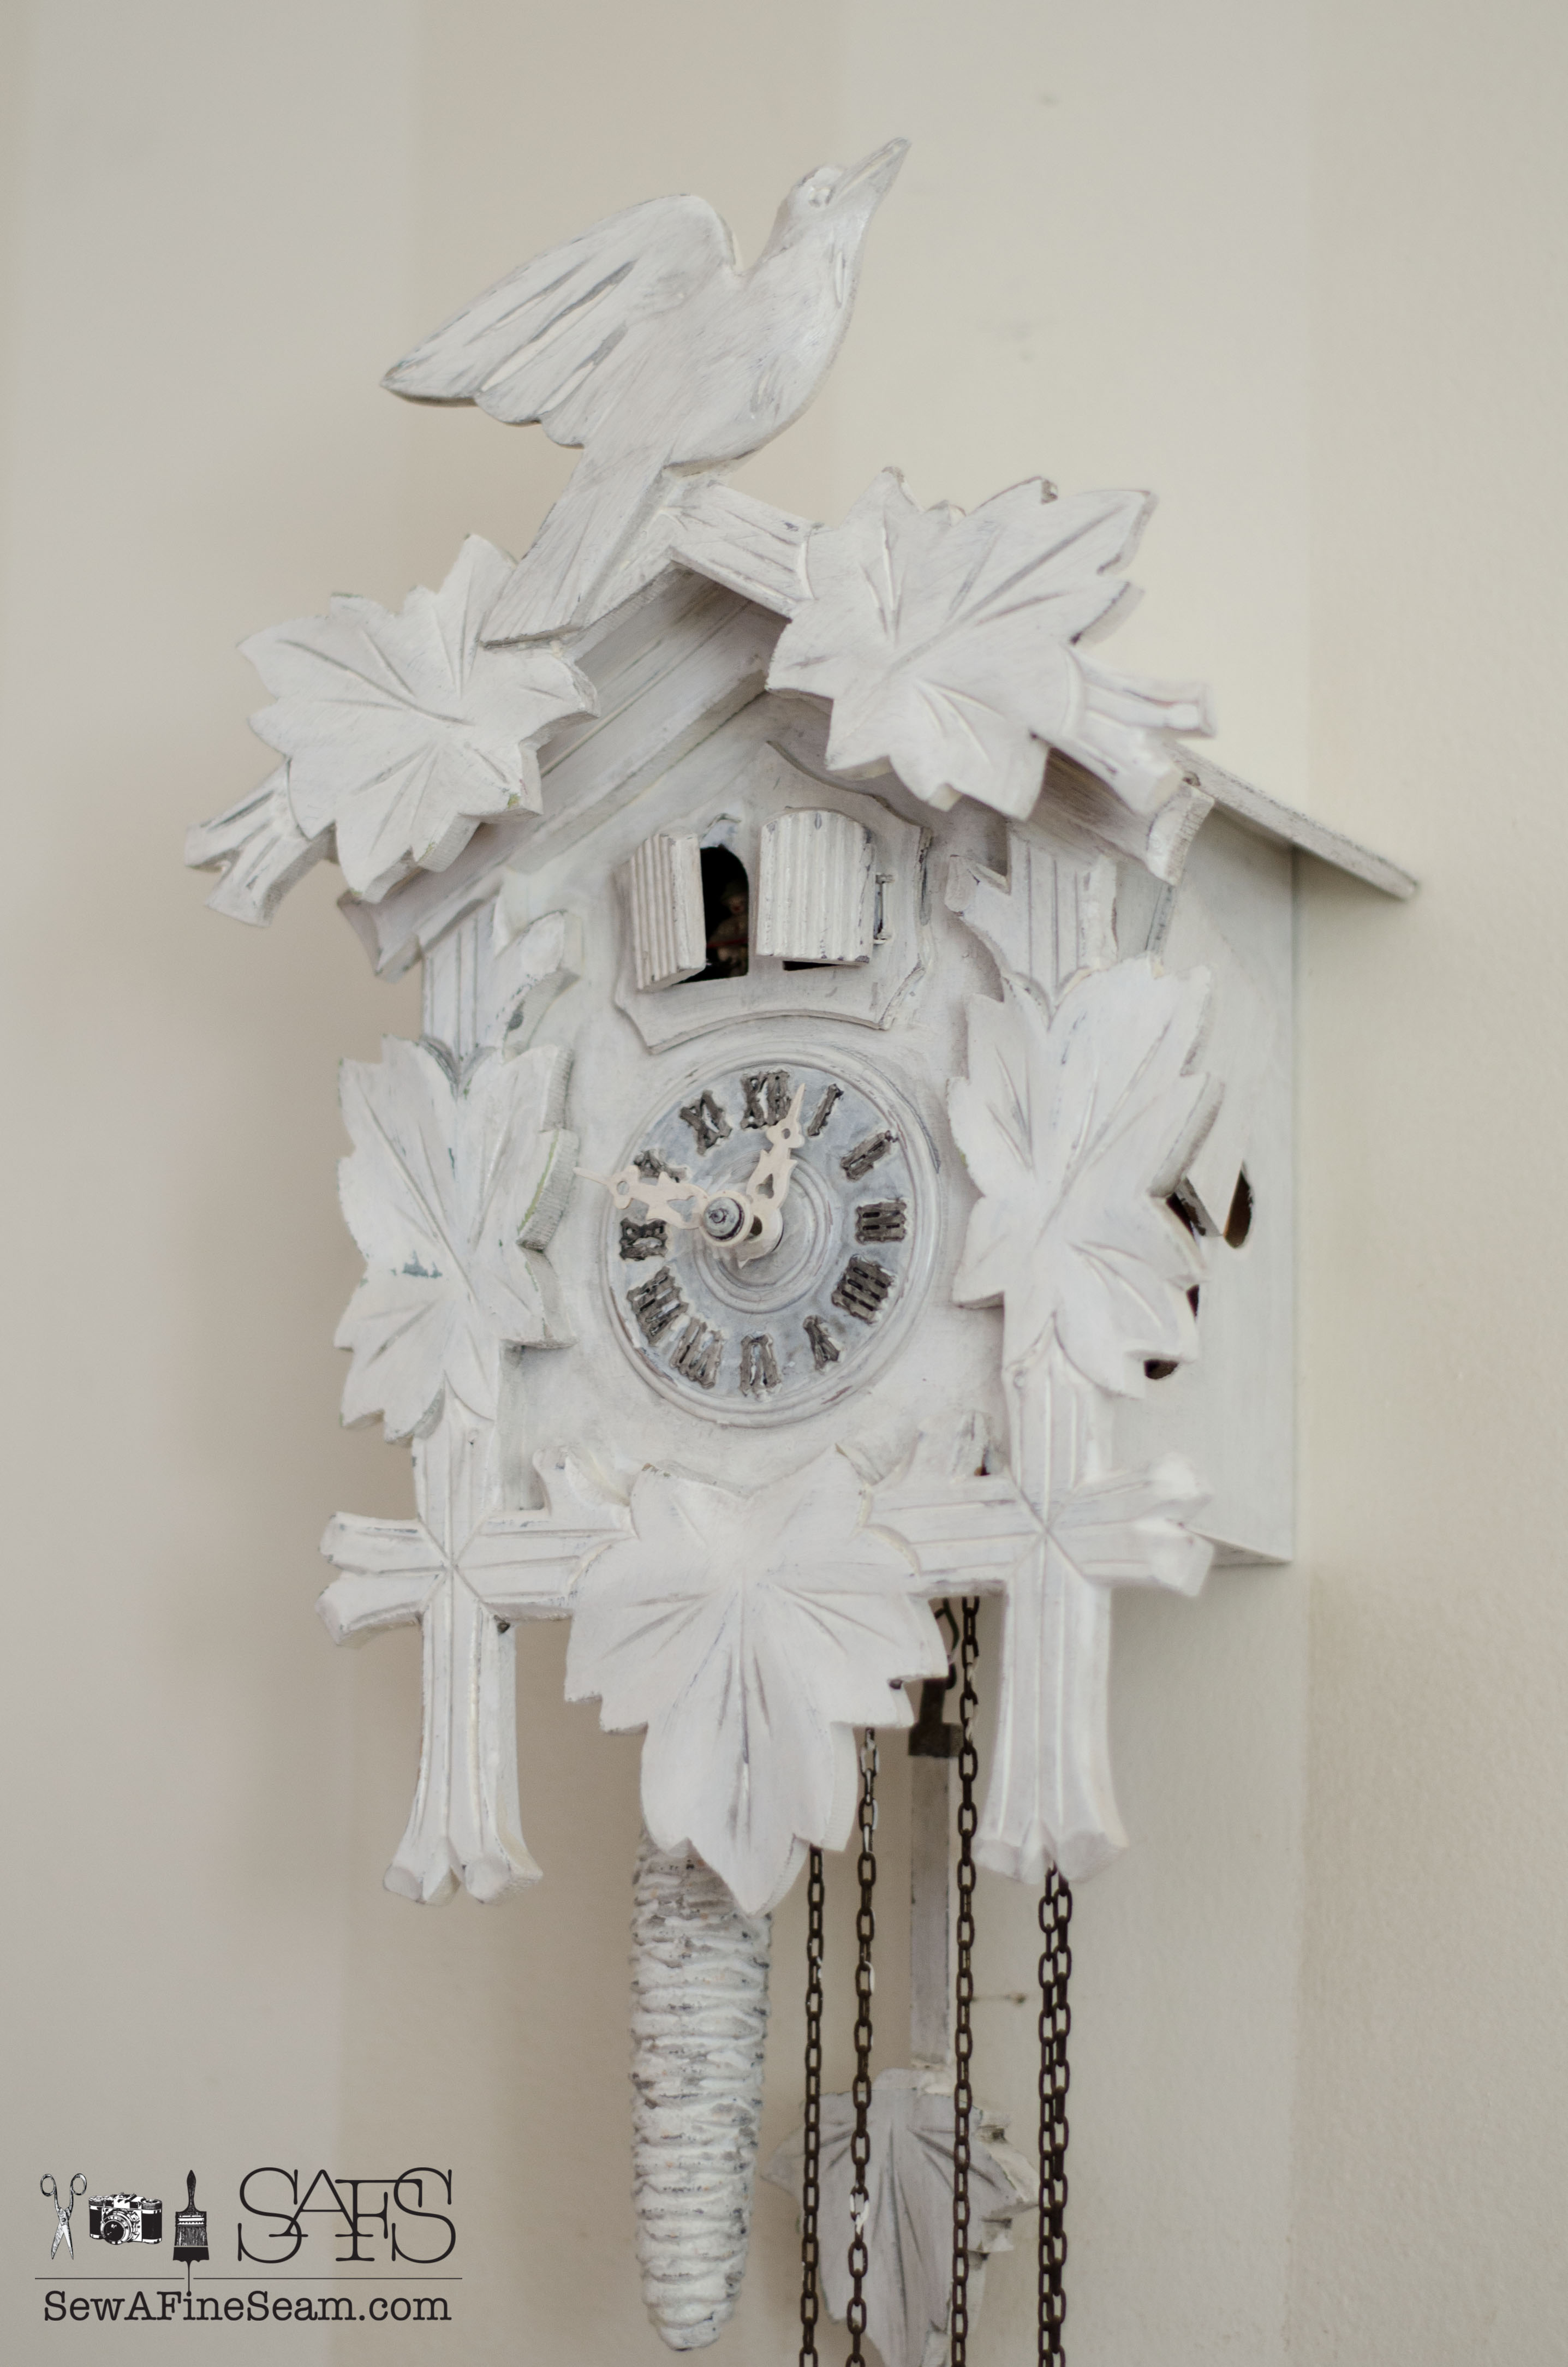 Cuckoo clock makeover sew a fine seam cuckoo clock painted white and hung on a white striped wall amipublicfo Image collections